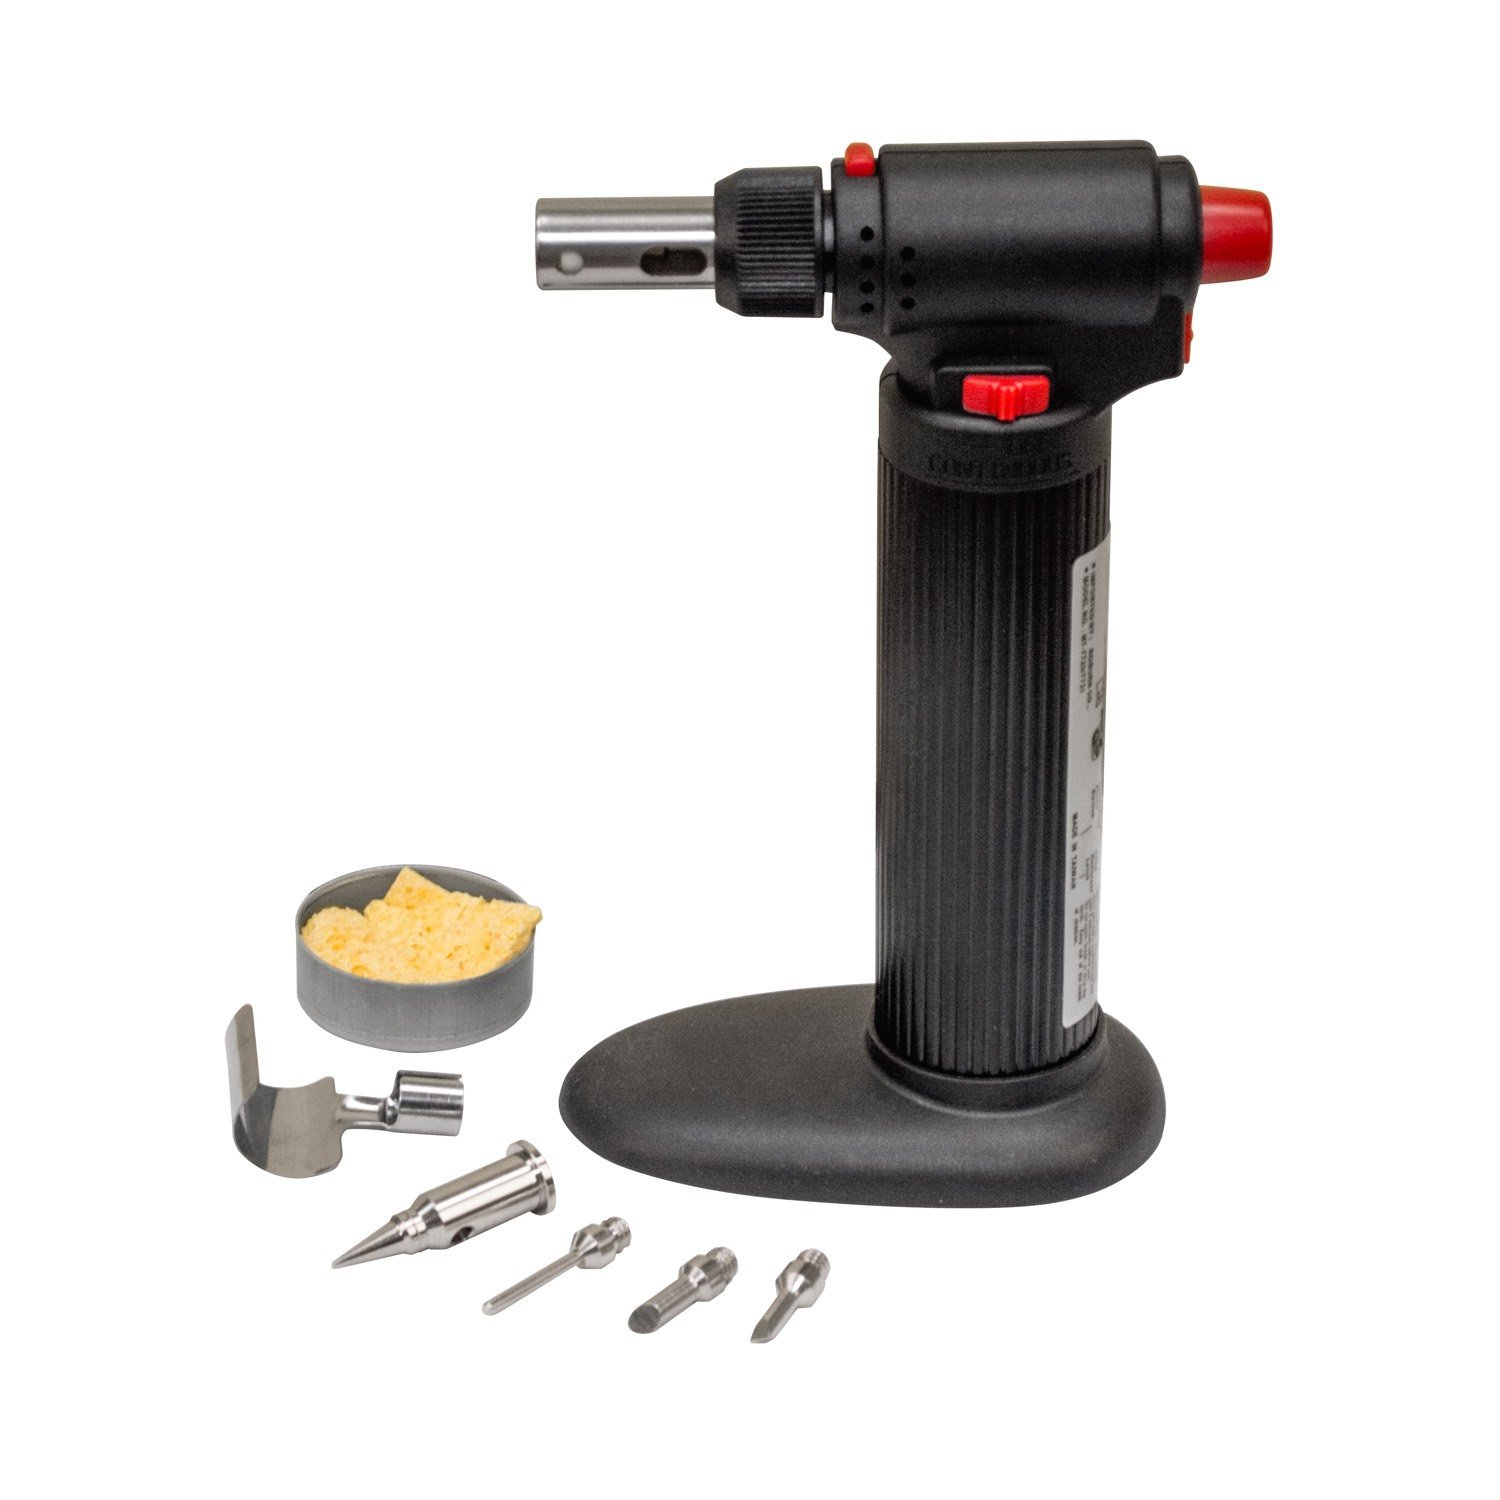 OEMTOOLS 24356 Professional 3-in-1 Butane Micro Torch Kit